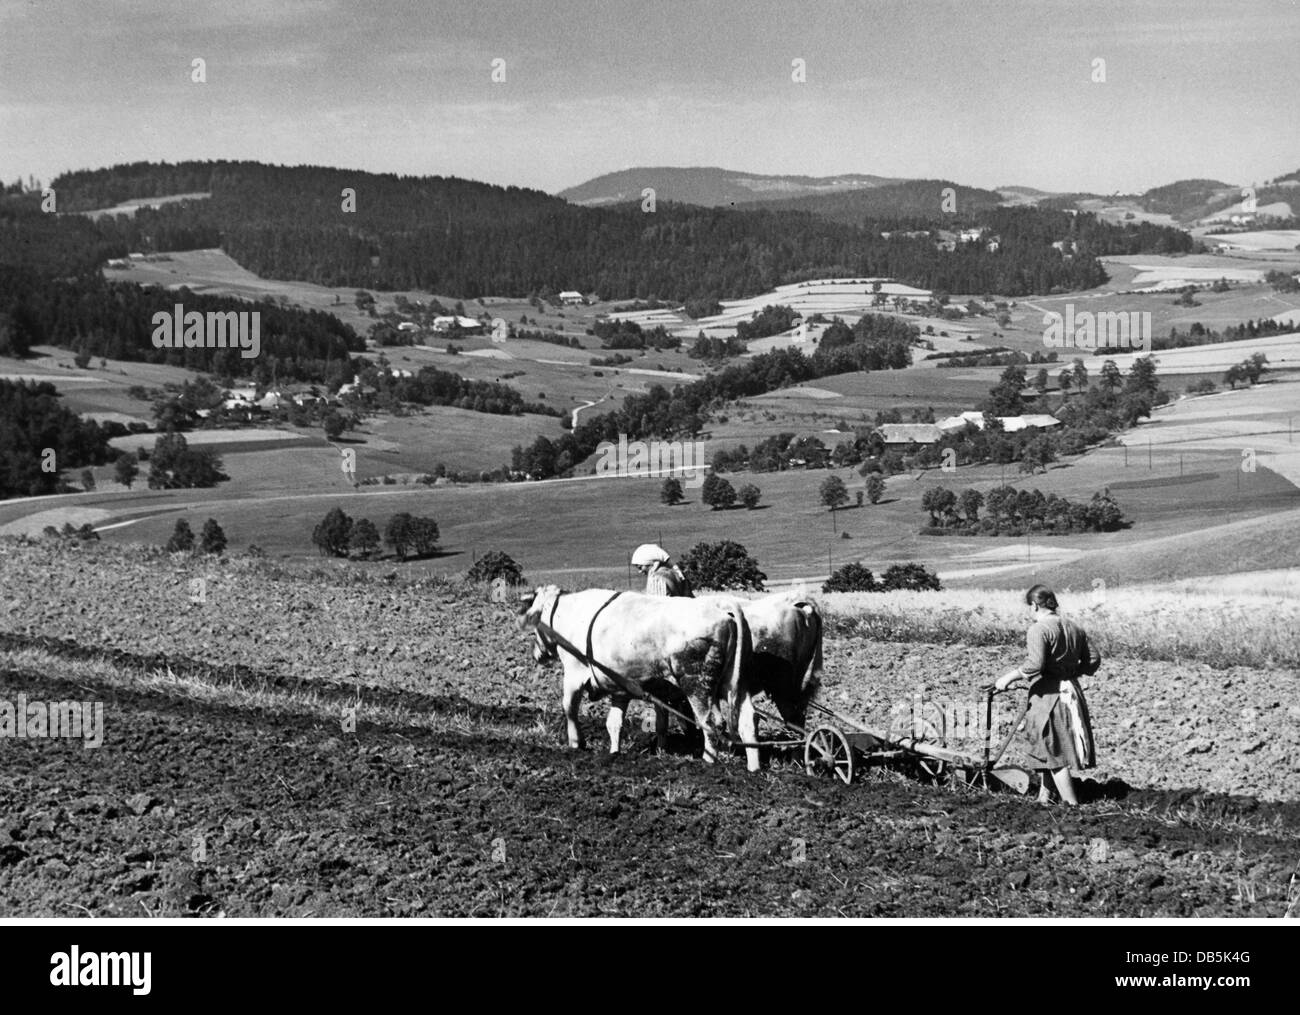 agriculture, ploughing, young woman ploughing a field, Bavarian Forrest, August, 1958, Additional-Rights-Clearences - Stock Image